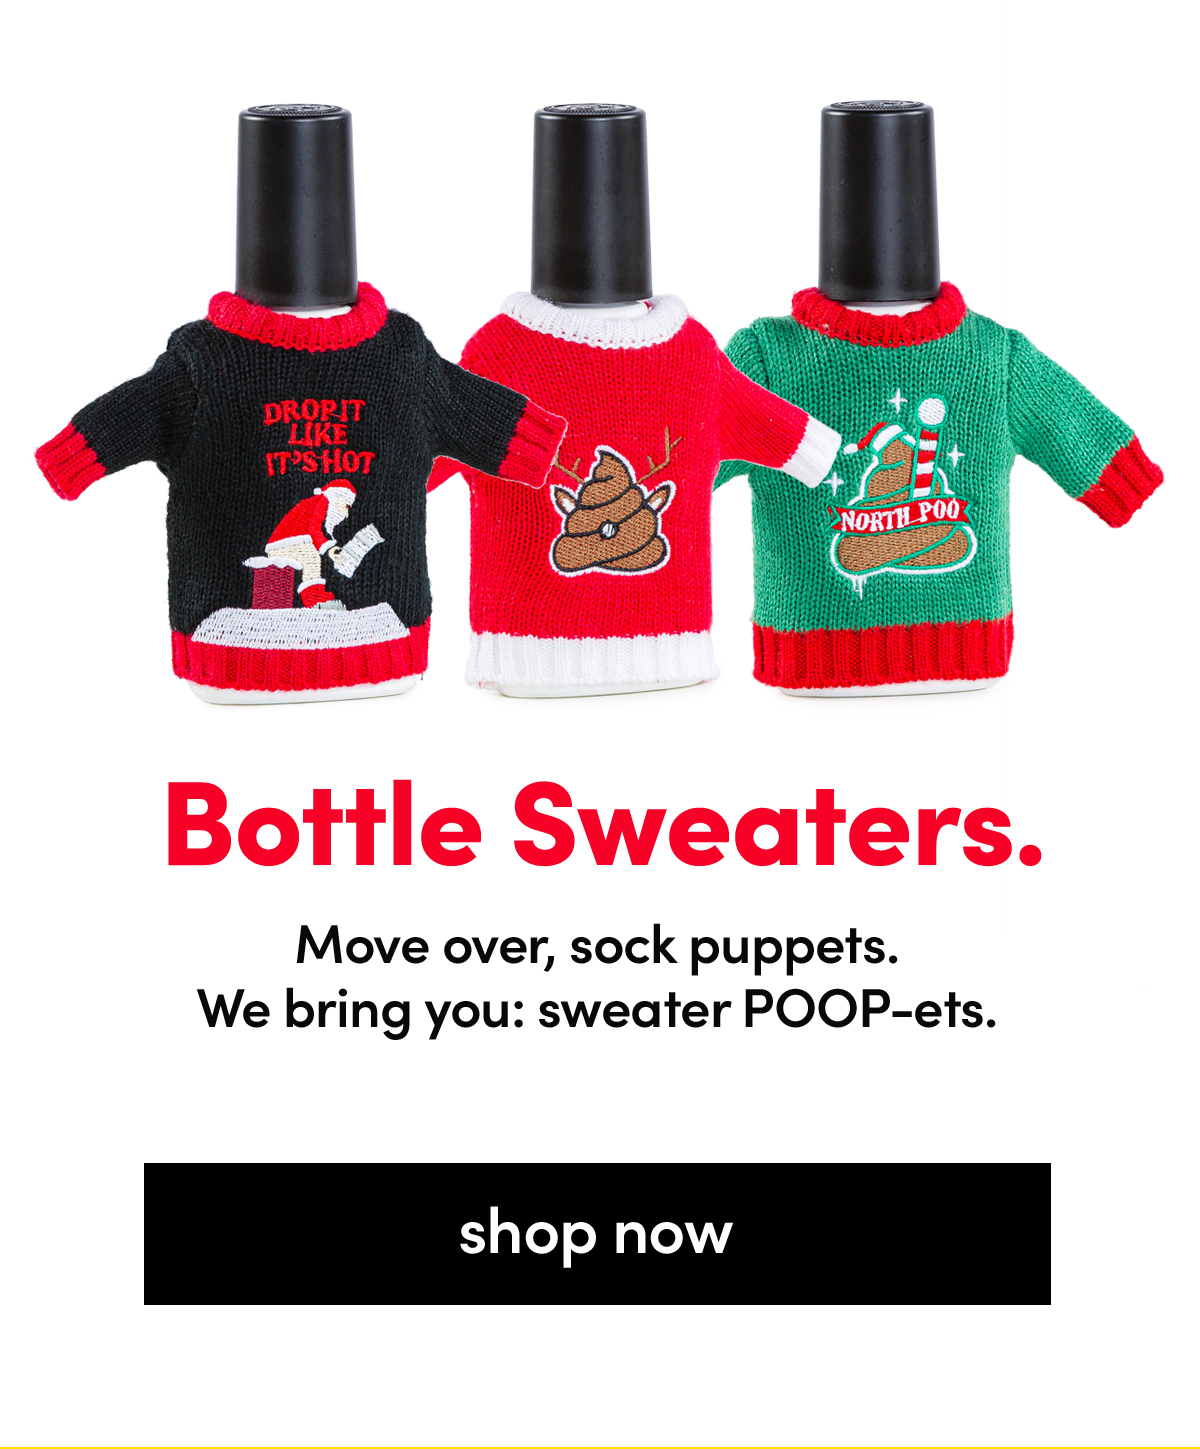 Bottle Sweaters. Move over, sock puppets. We bring you: Sweater POOP-ets. | Shop Now